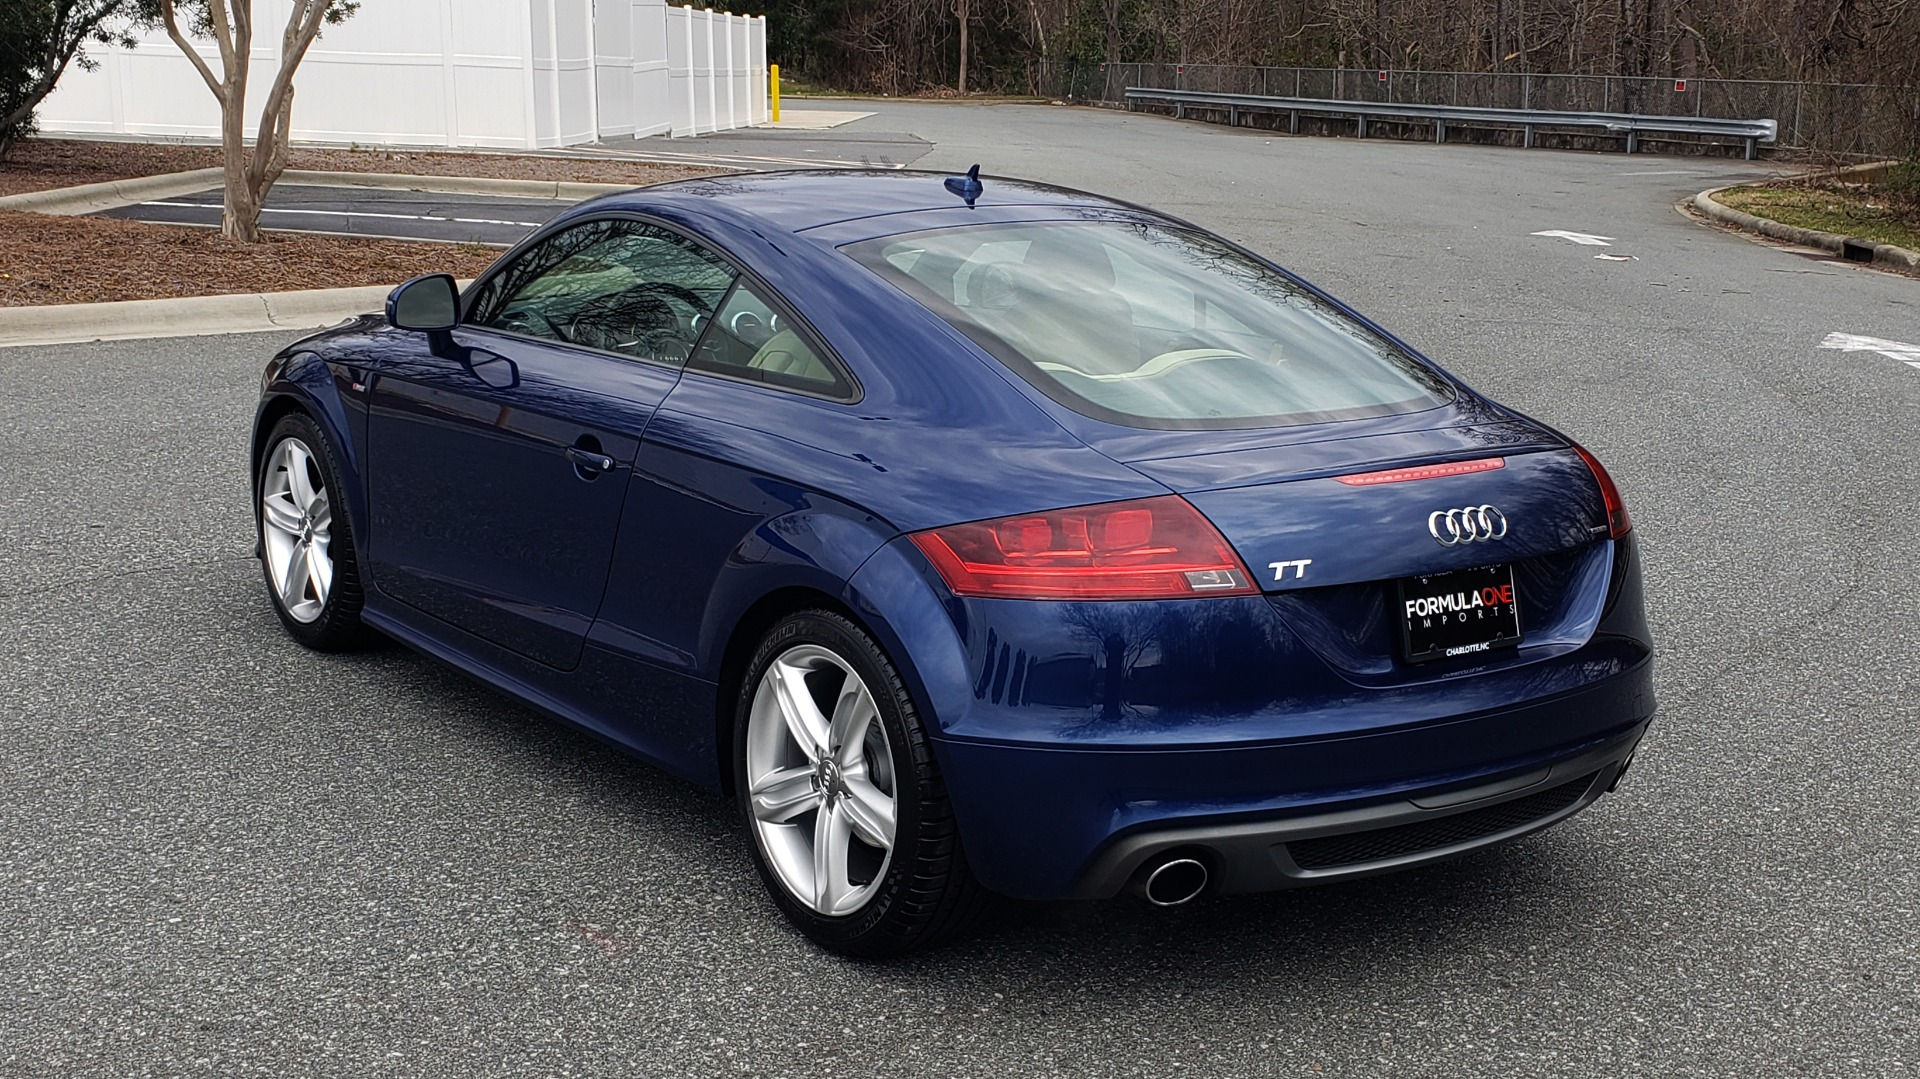 Used 2014 Audi TT 2.0T S-TRONIC / COUPE / AWD / LEATHER / HEATED SEATS for sale Sold at Formula Imports in Charlotte NC 28227 4